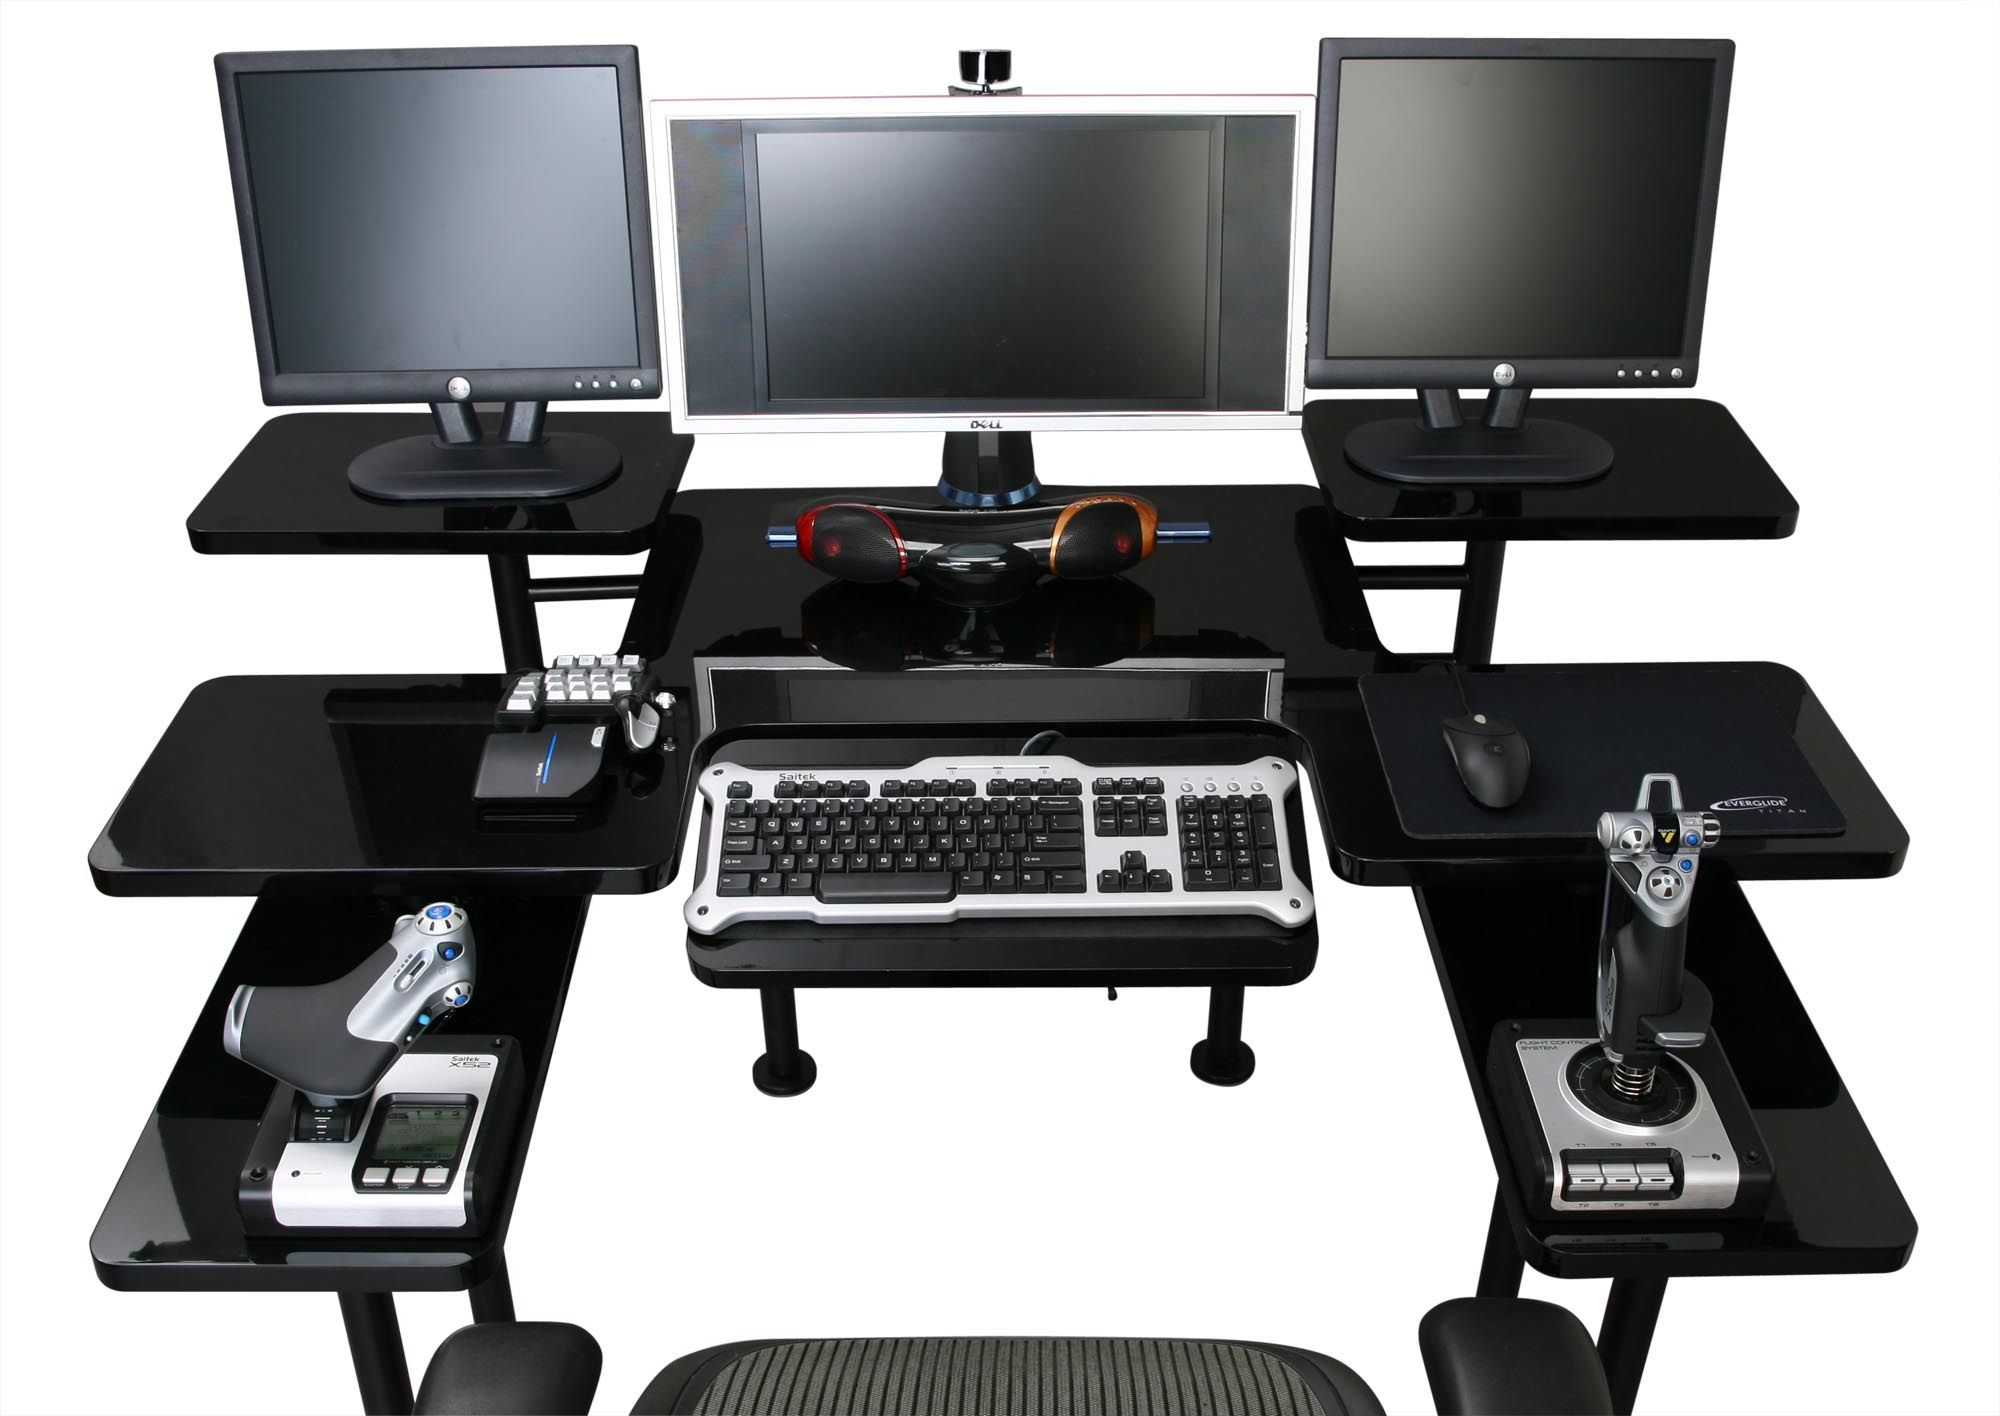 Genial Ergonomic Gaming Desk   Google Search